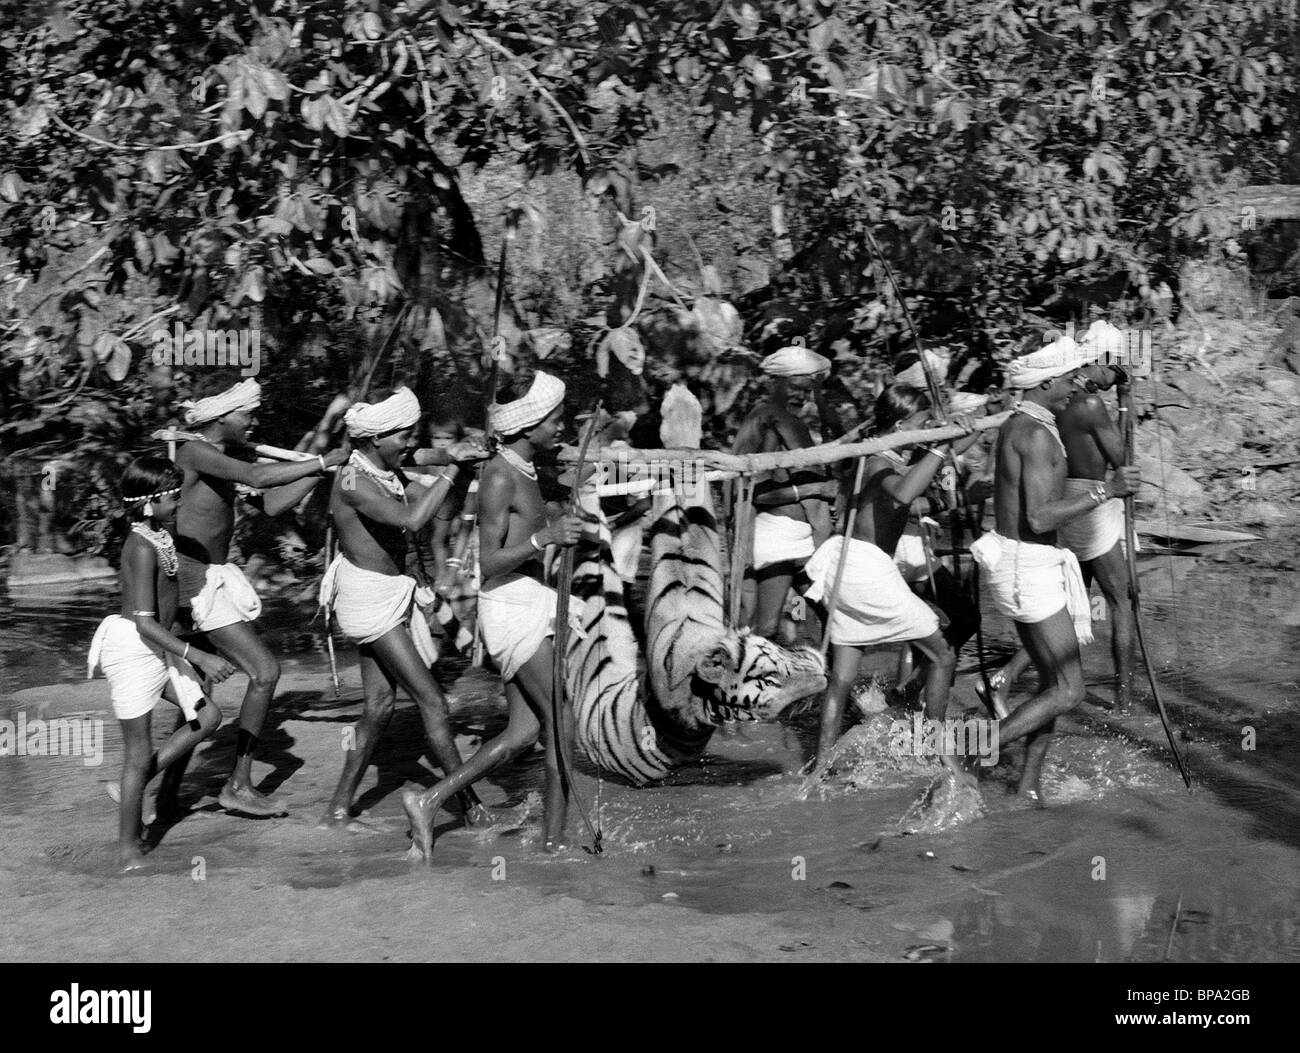 INDIANS WITH CAPTURED TIGER THE FLUTE AND THE ARROW (1957) - Stock Image